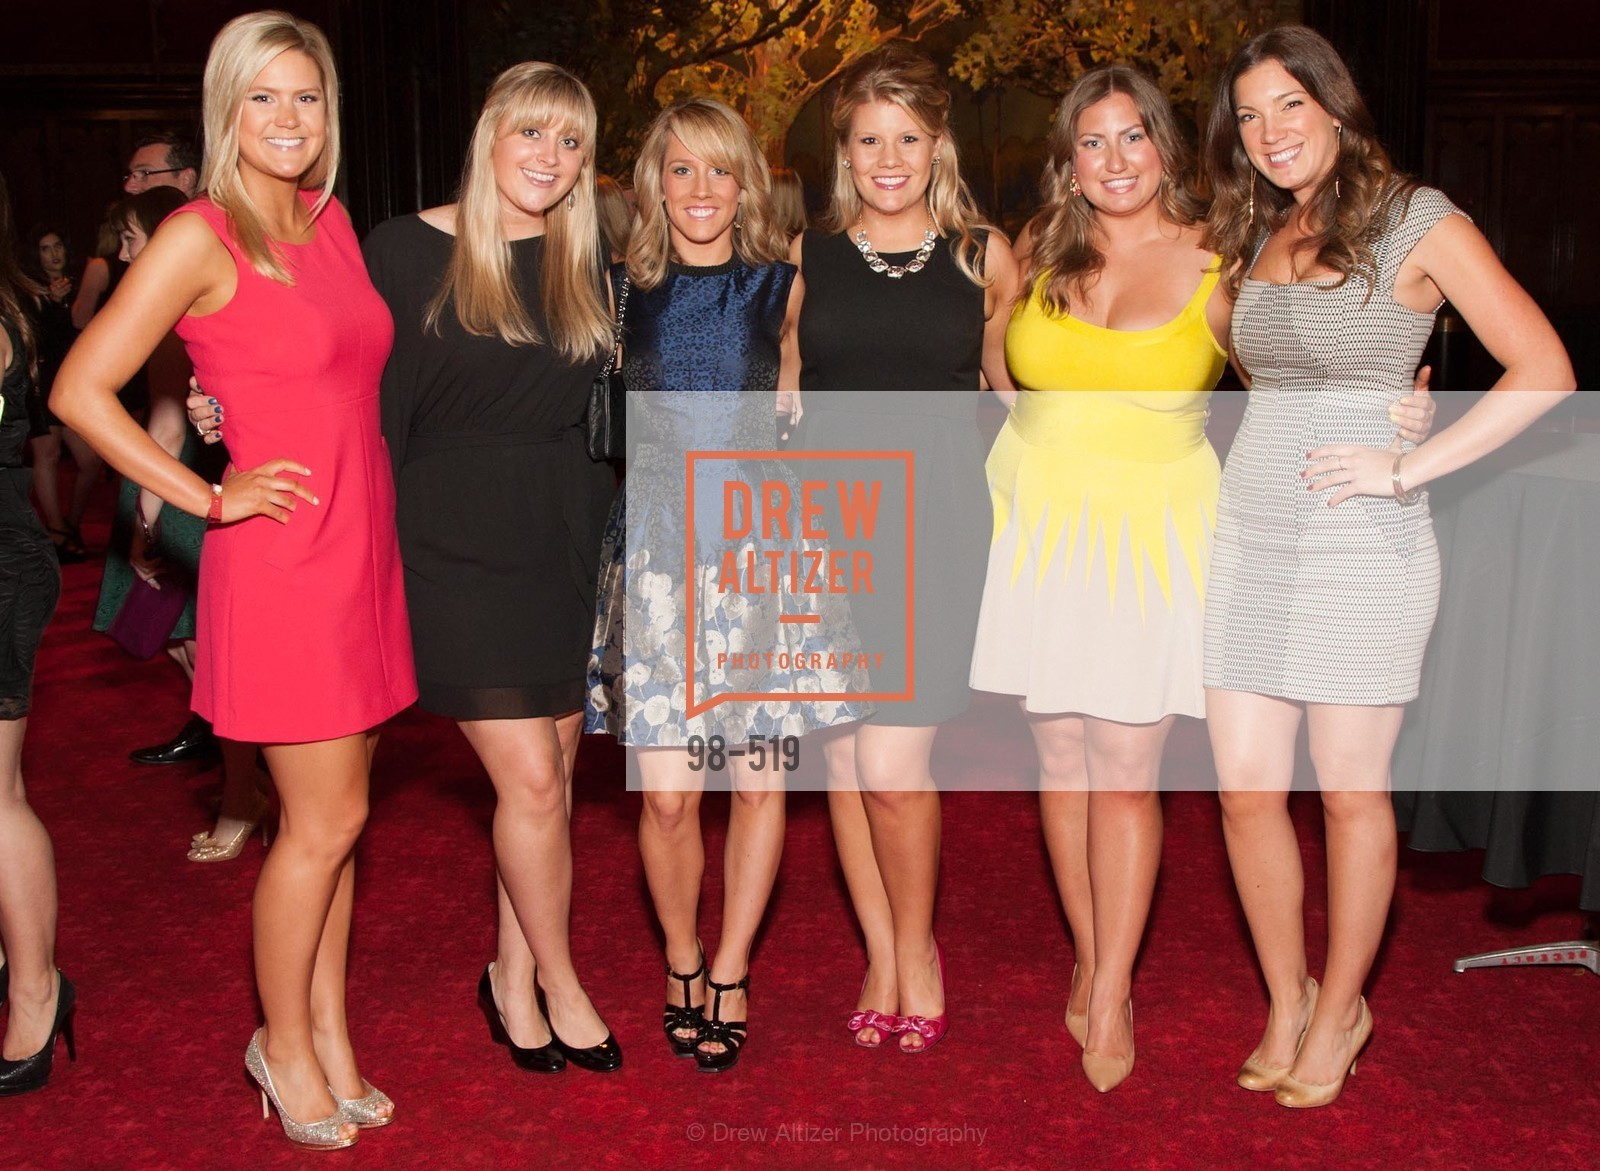 Abbey Davis, Molly Castle, Annie Mowlds, Laura Davis, Annie Benisch, Julia Stenderup, Spinsters of San Francisco Presents: 2014 Patrons Reception Honoring Lori Shigekane, US. US, April 12th, 2014,Drew Altizer, Drew Altizer Photography, full-service agency, private events, San Francisco photographer, photographer california